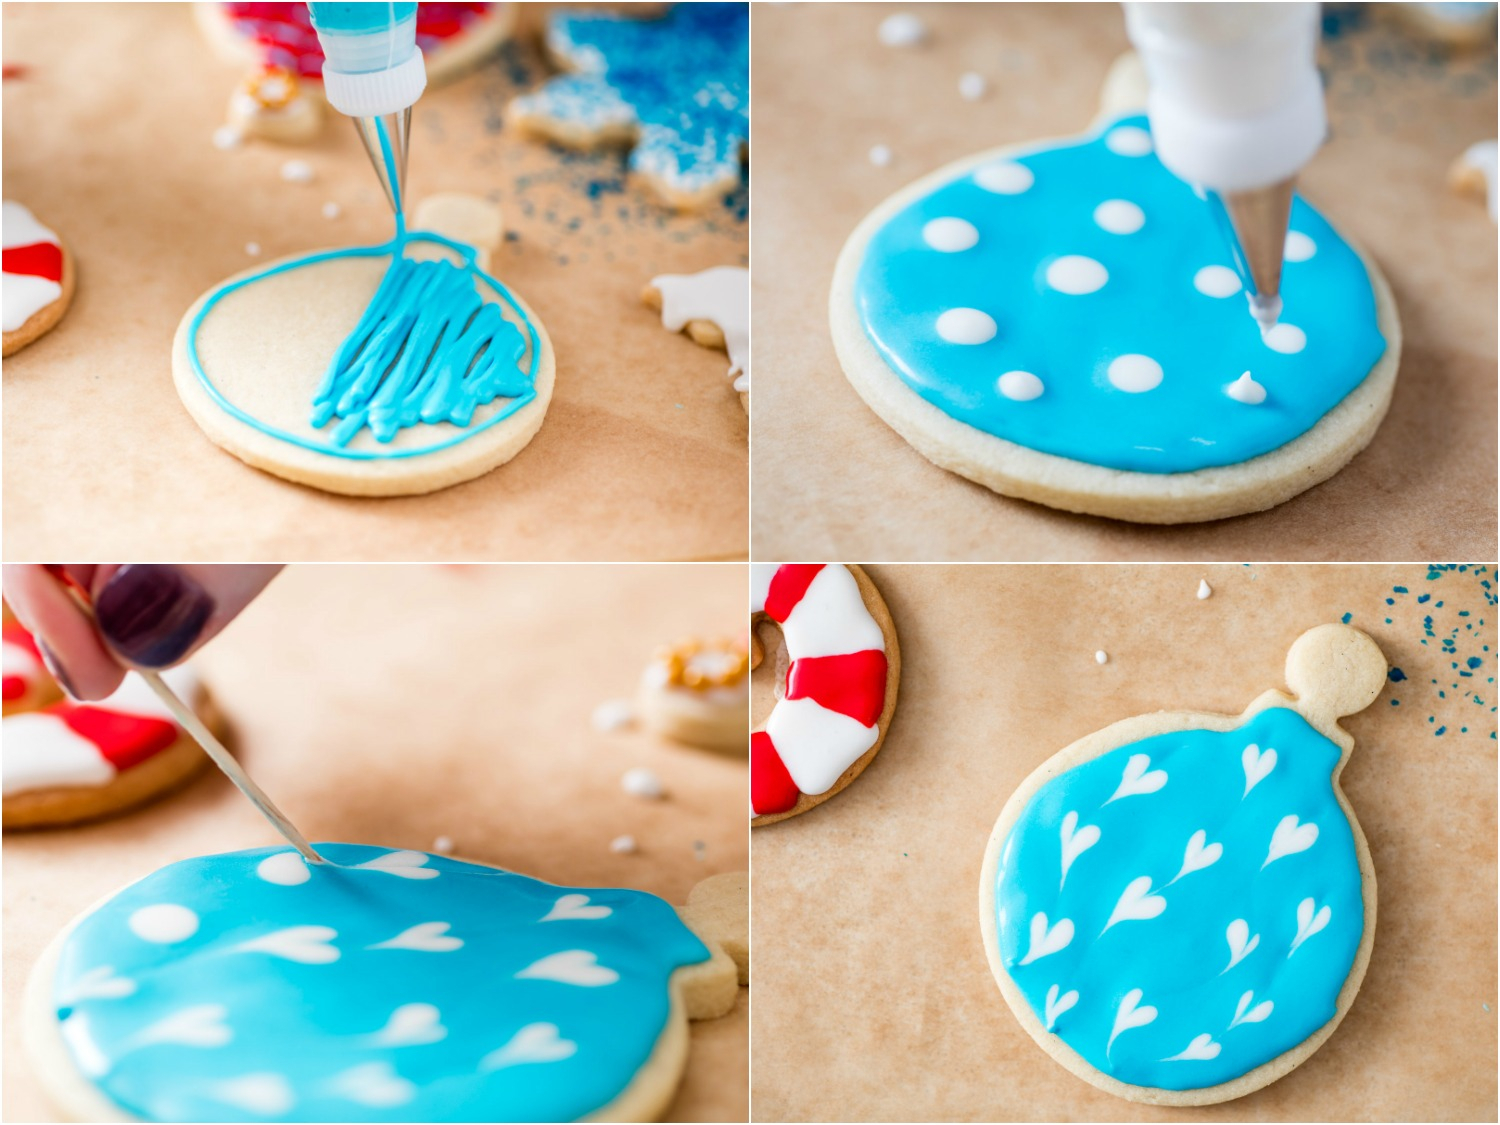 10 Amazing Easy Sugar Cookie Decorating Ideas a royal icing tutorial decorate christmas cookies like a boss 2021